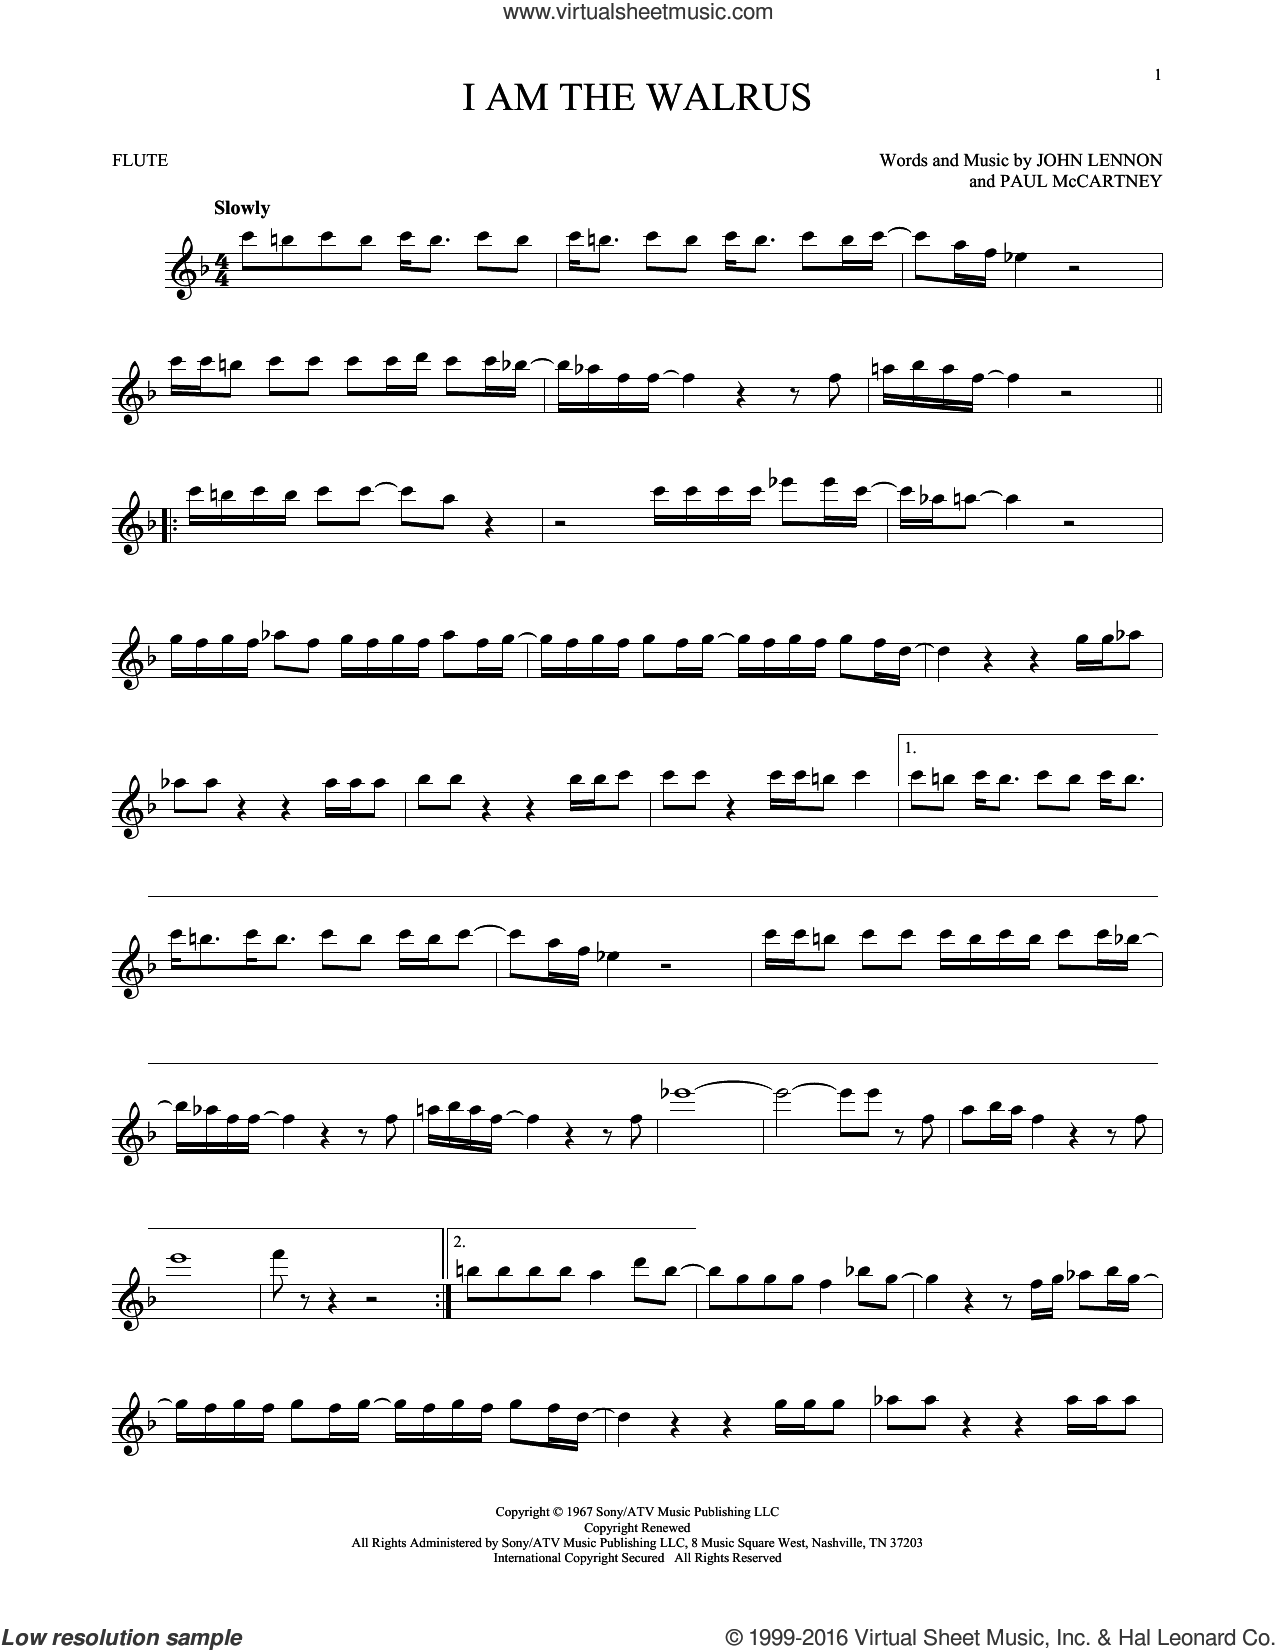 I Am The Walrus sheet music for flute solo by Paul McCartney, The Beatles and John Lennon. Score Image Preview.